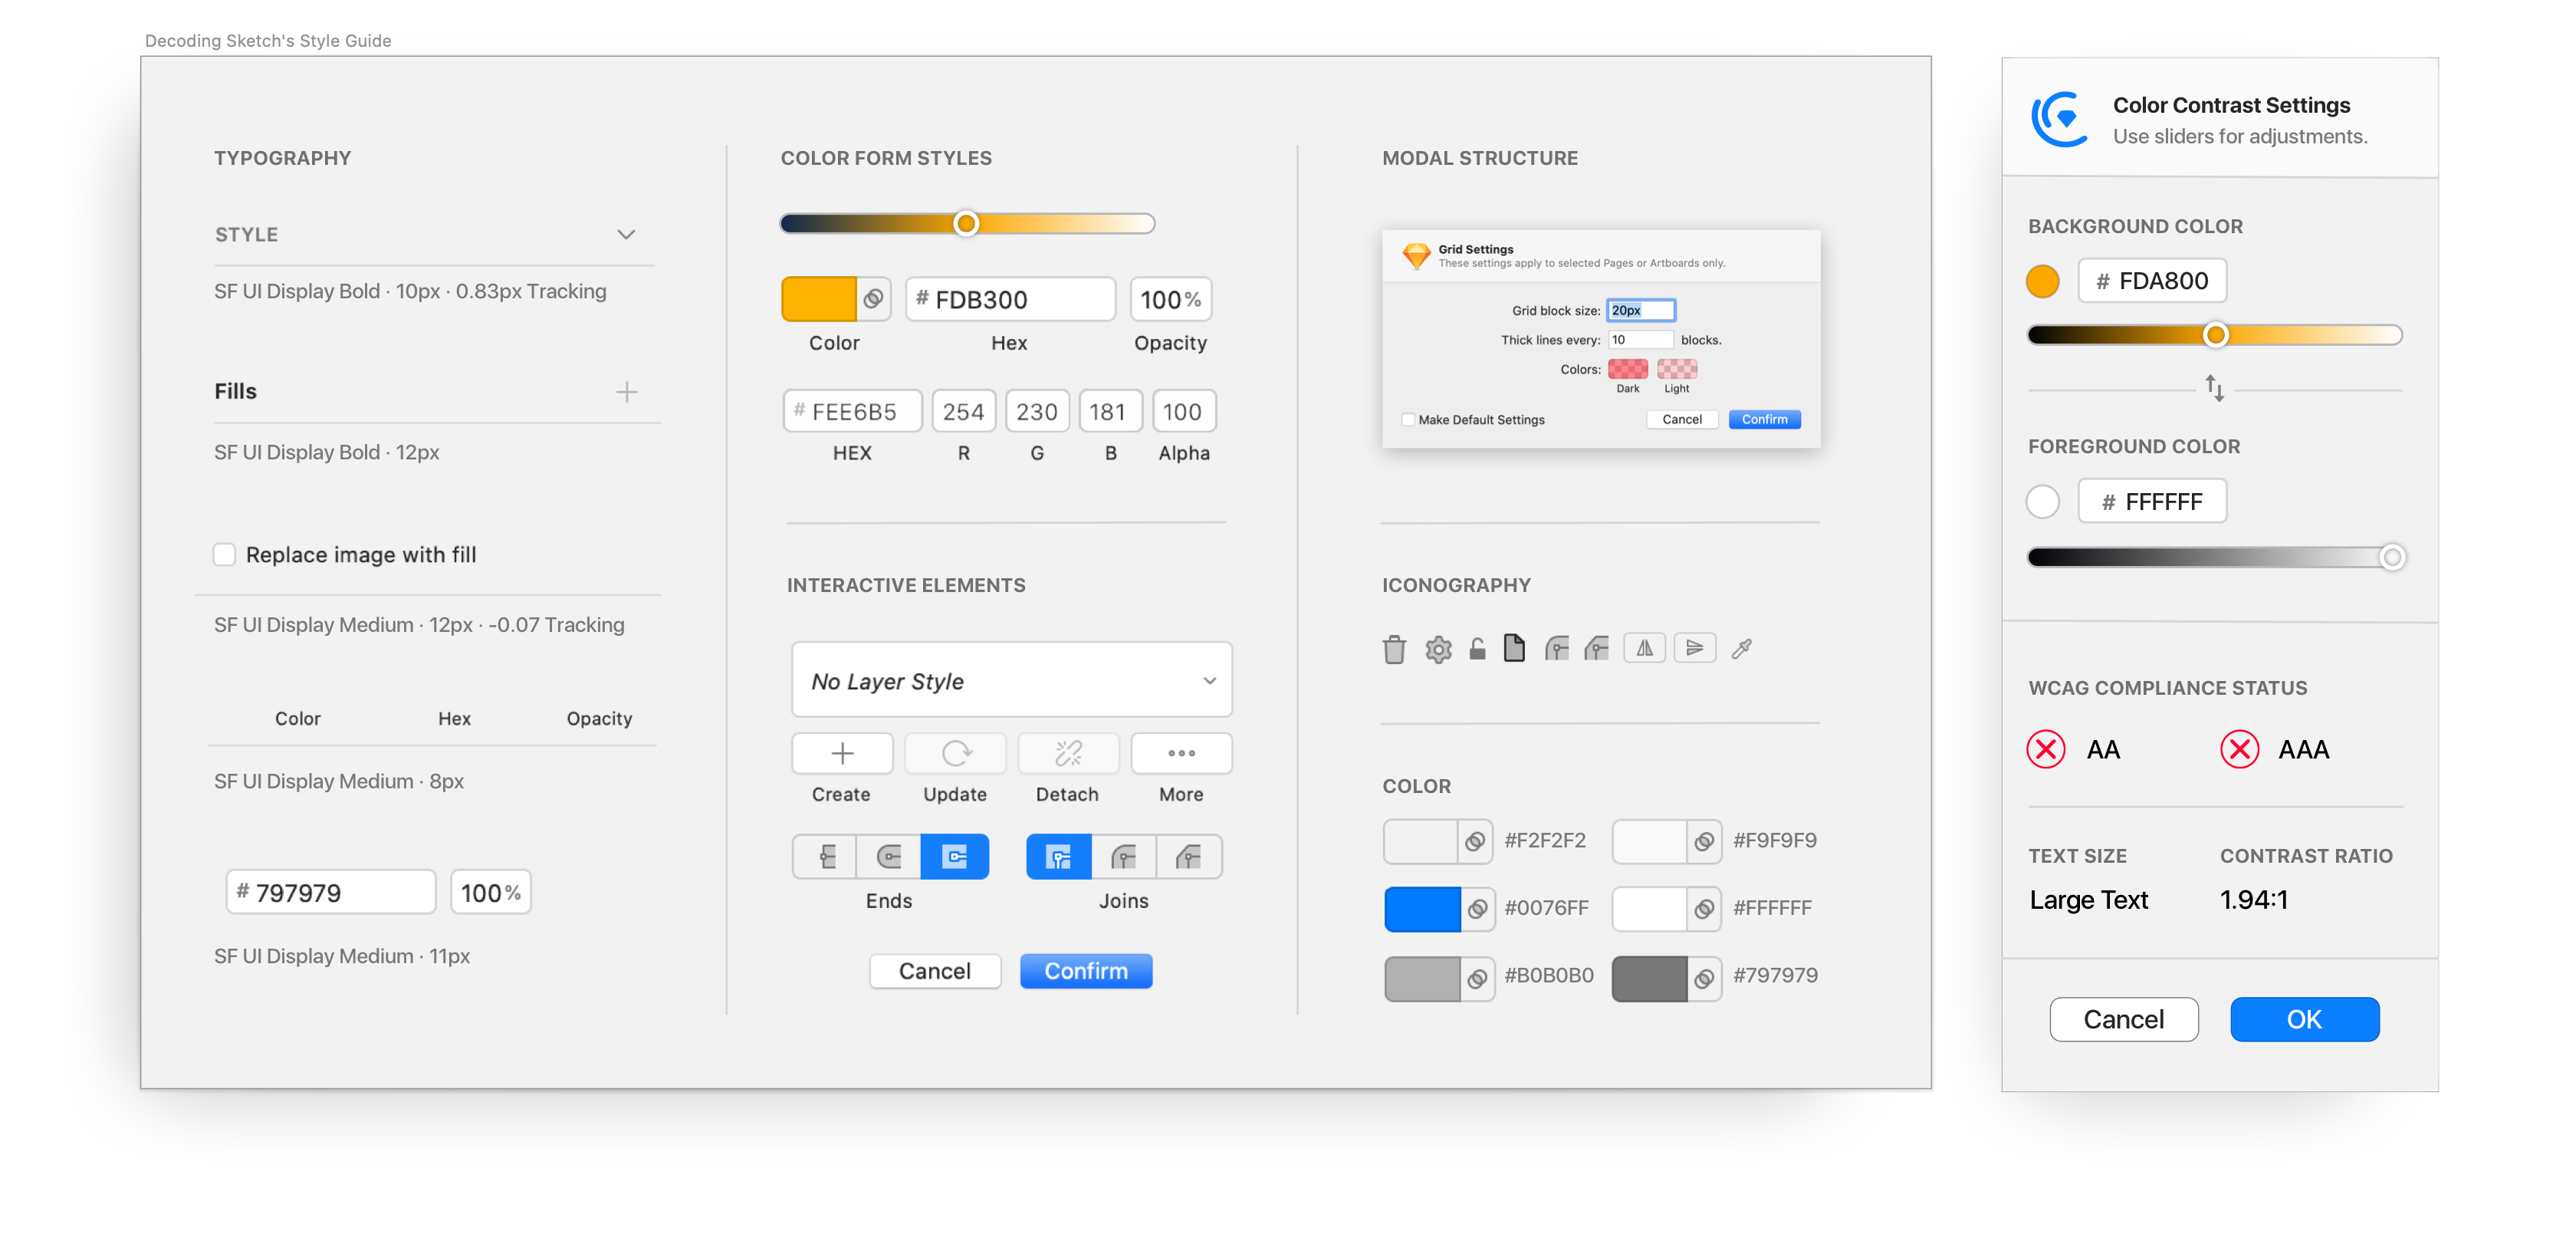 Yanas mock style guide for Sketch helped her create a plugin that felt like part of Sketch.